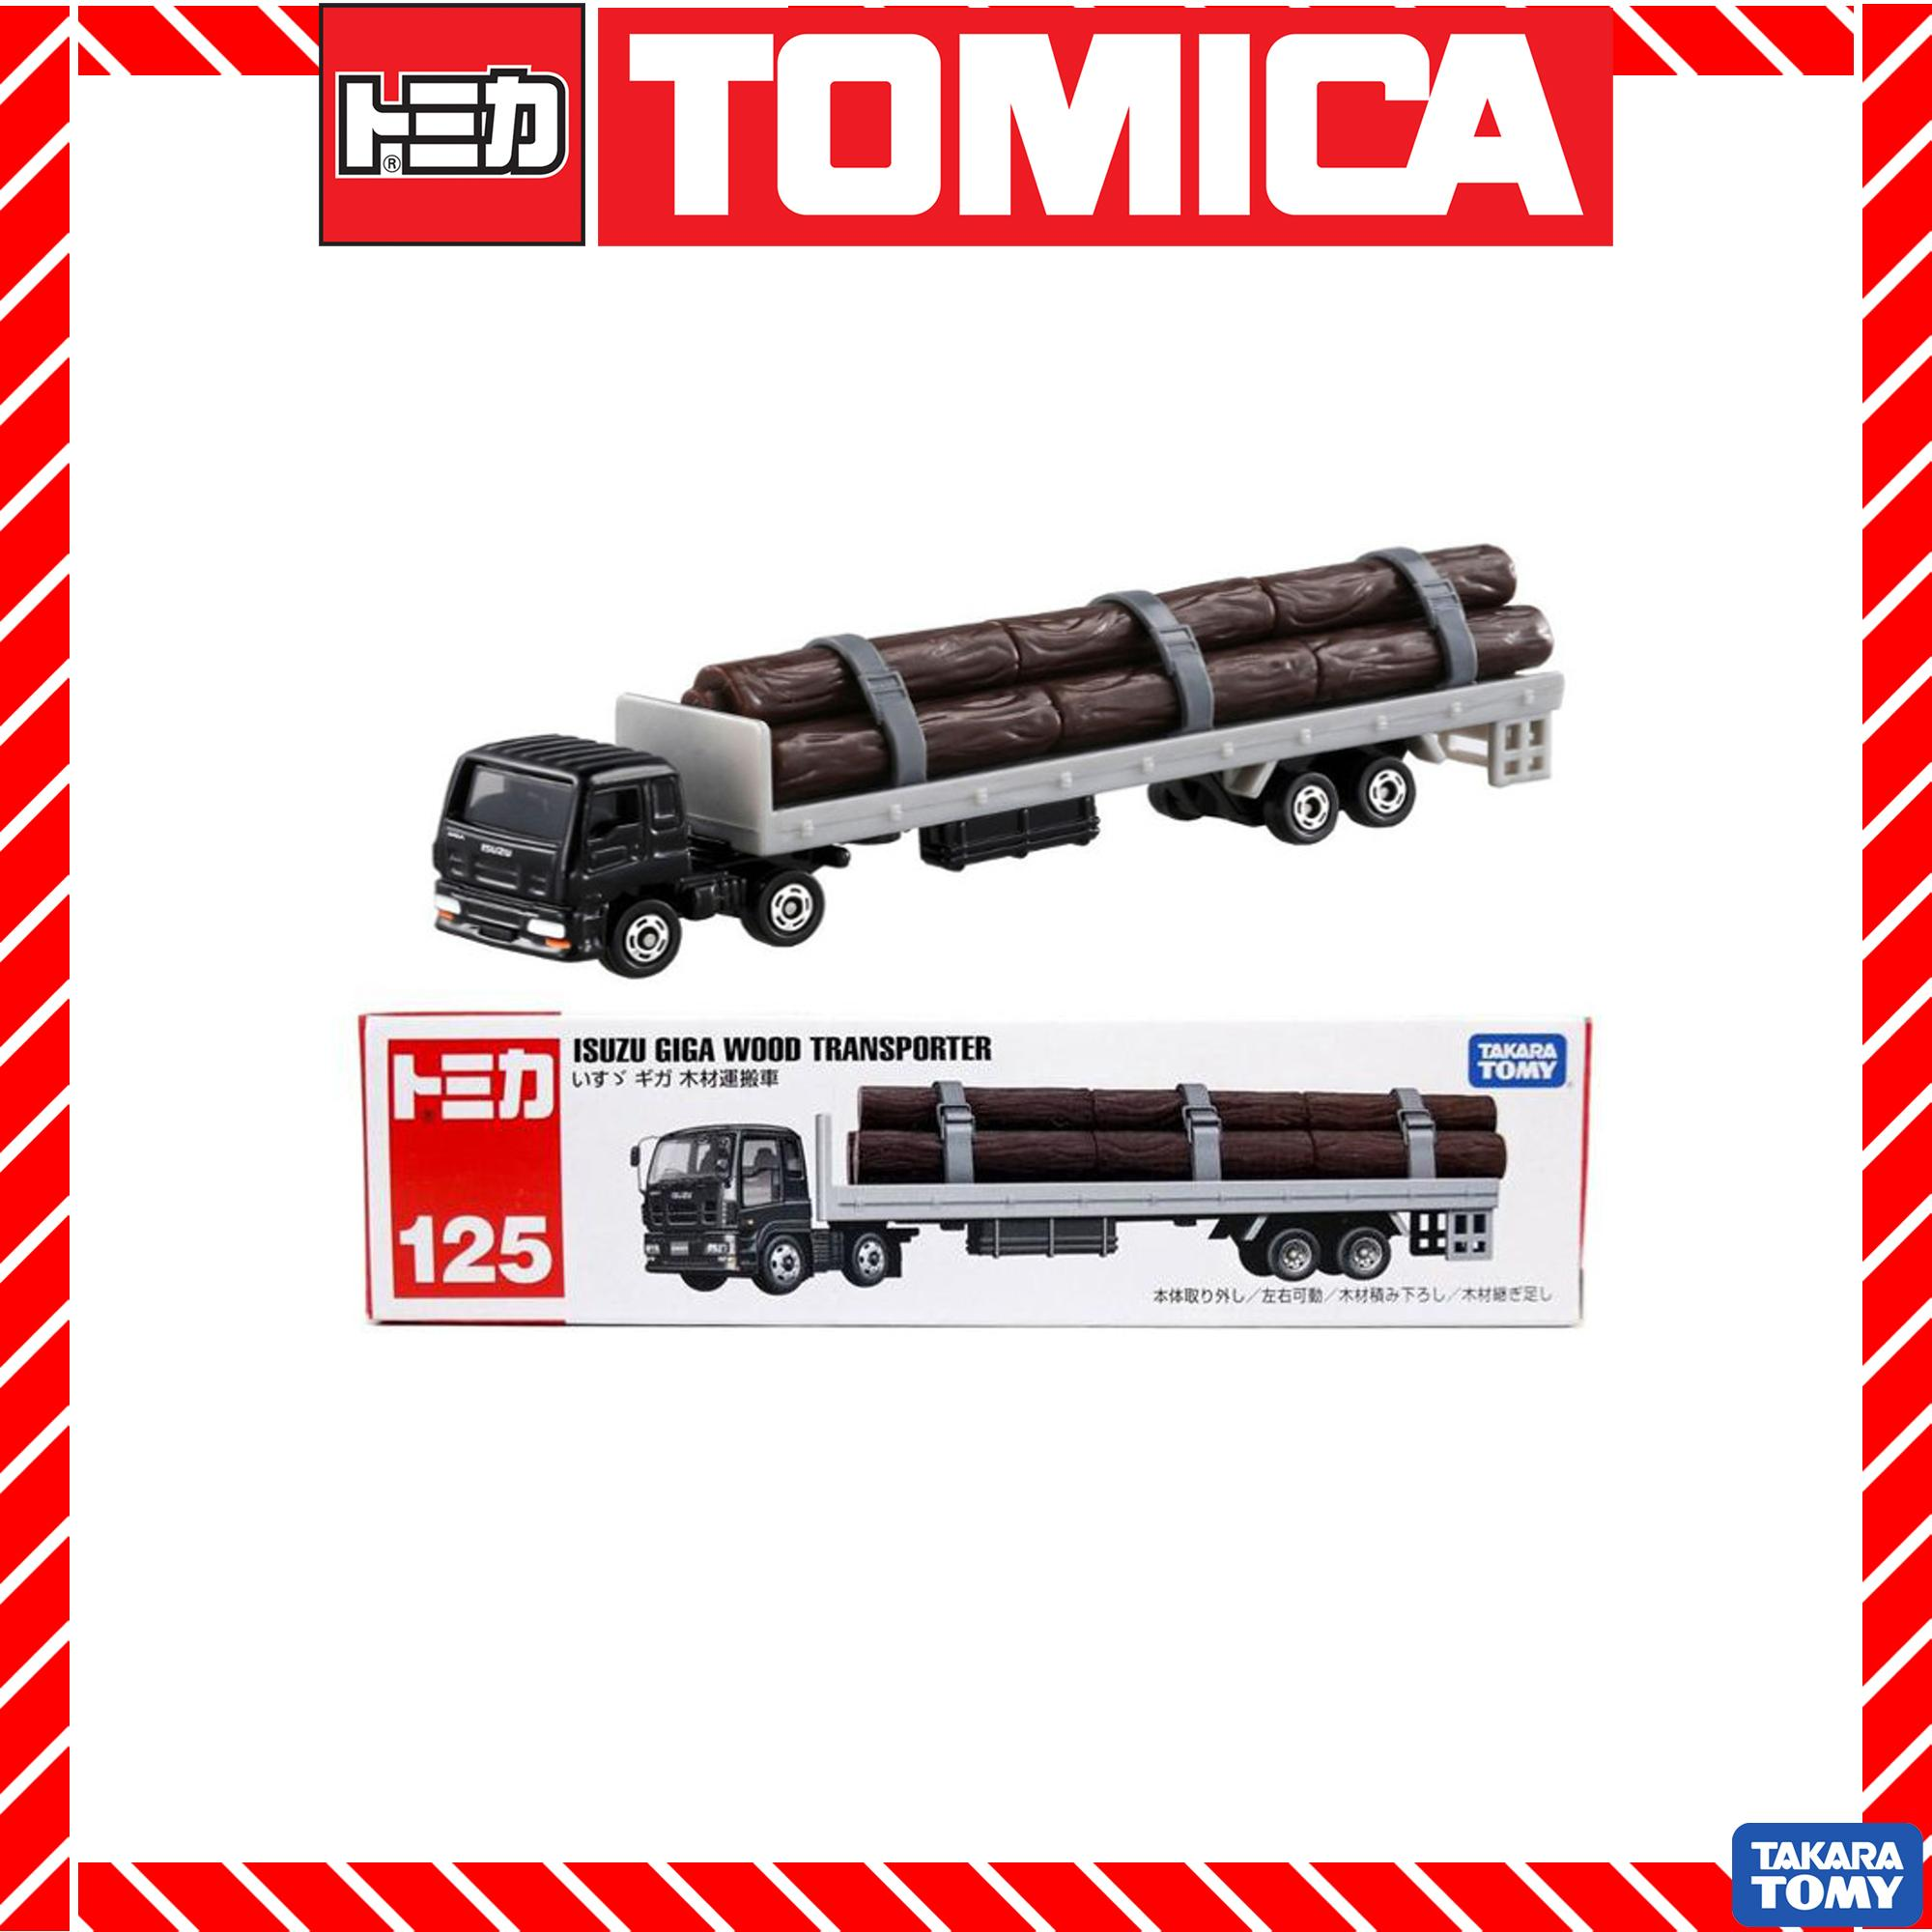 Tomica Philippines Price List Toy Car Truck For Lionel Trains Supero Remote Control Switches No 112 Die Cast No125 Isuzu Giga Wood Transporter